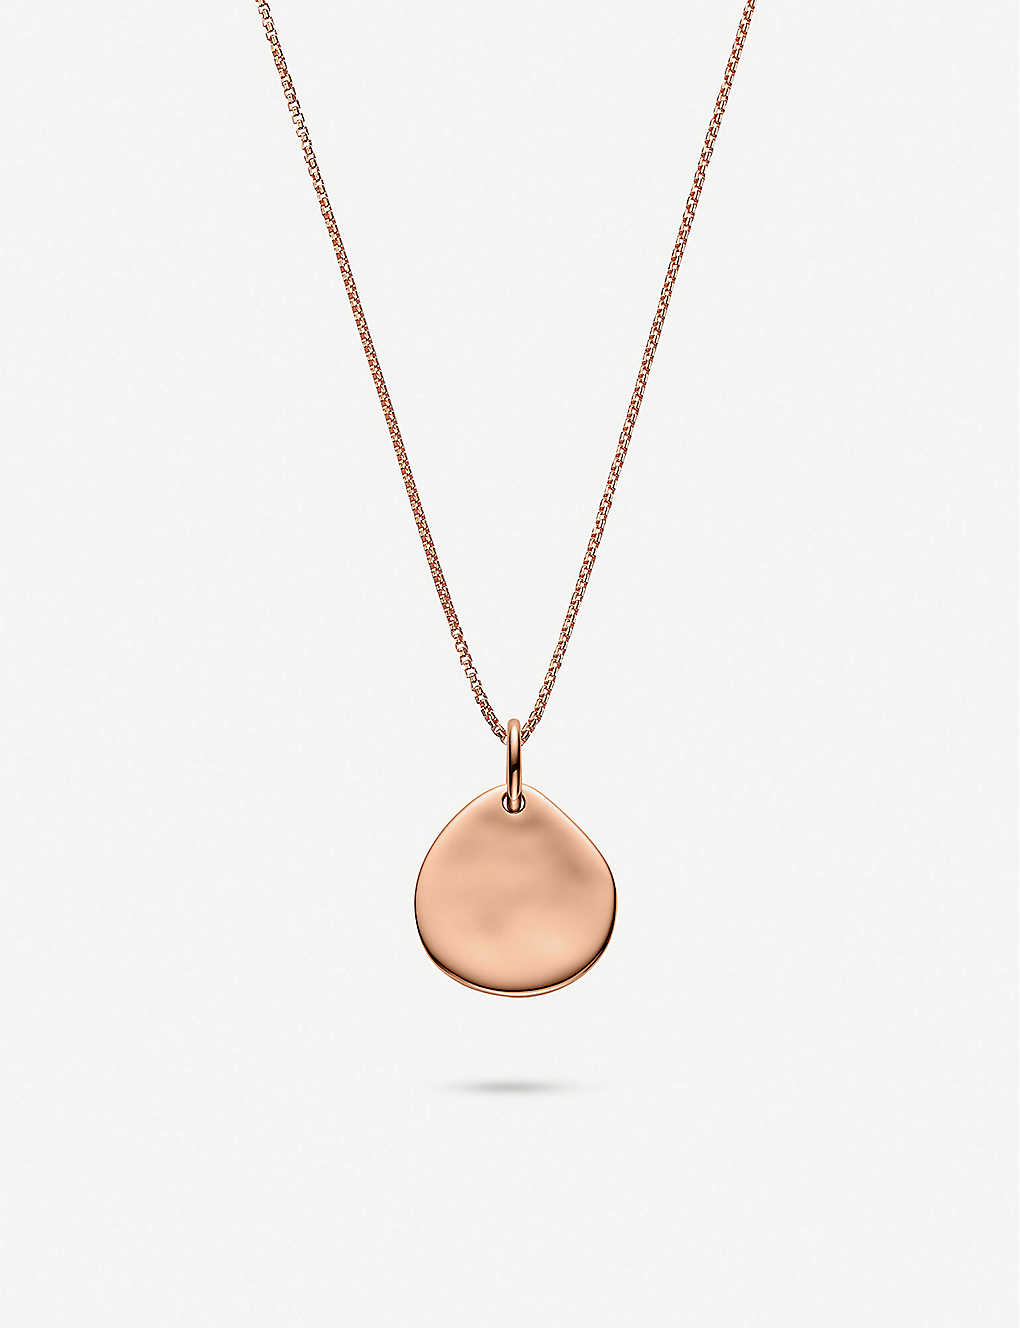 MONICA VINADER: Fine oval box 18ct rose gold-plated vermeil sterling silver chain